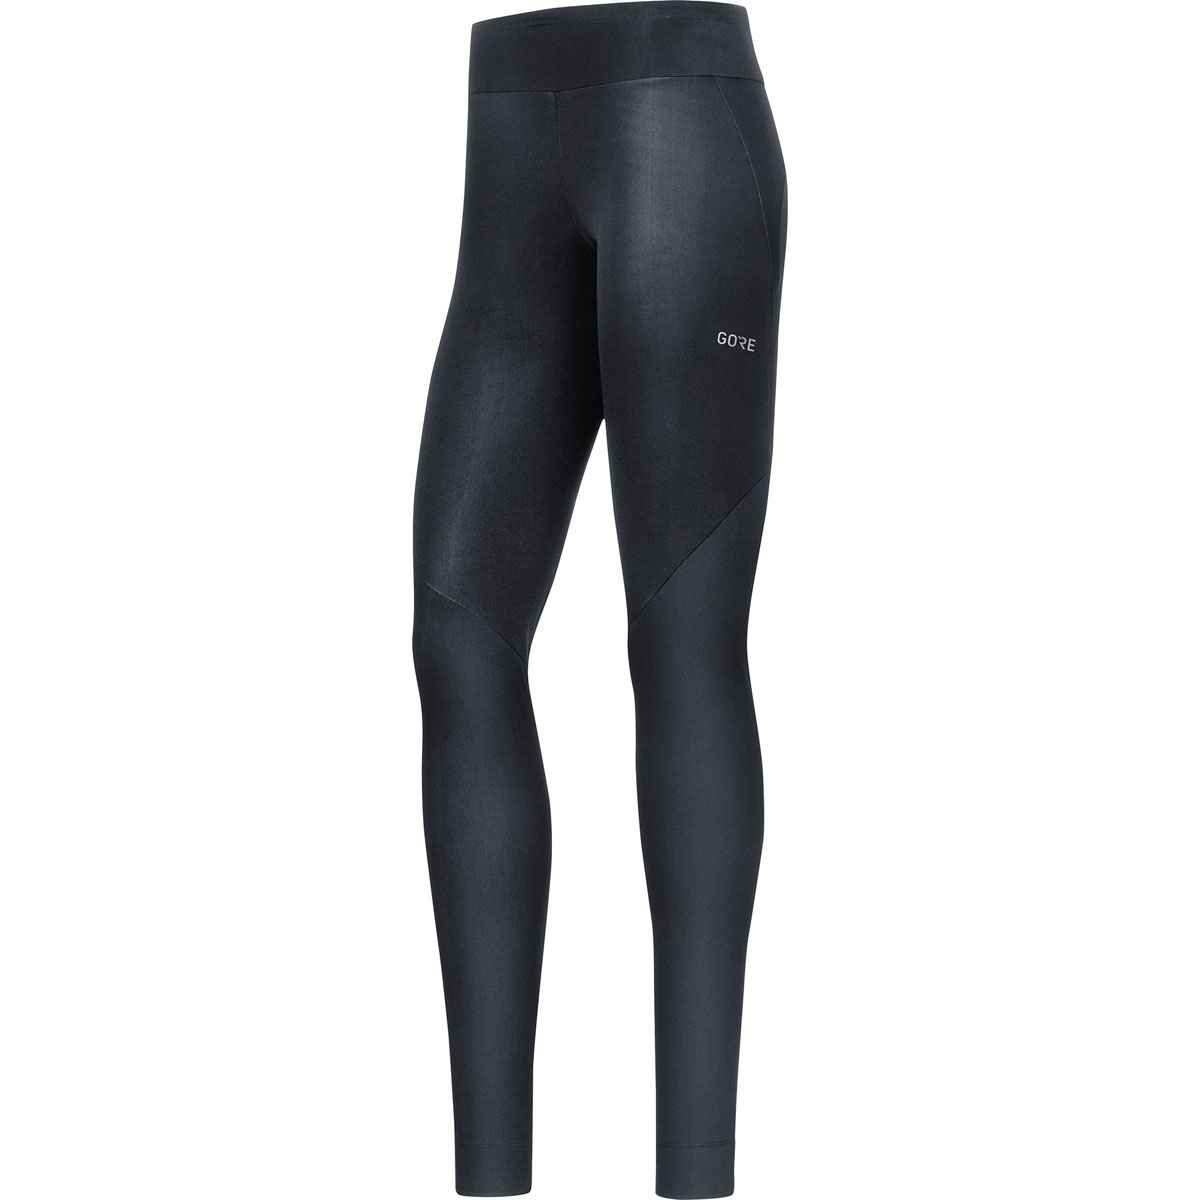 Gore Women's R3 Wmn Partial Gws Tights,  black,  M by GORE WEAR (Image #1)